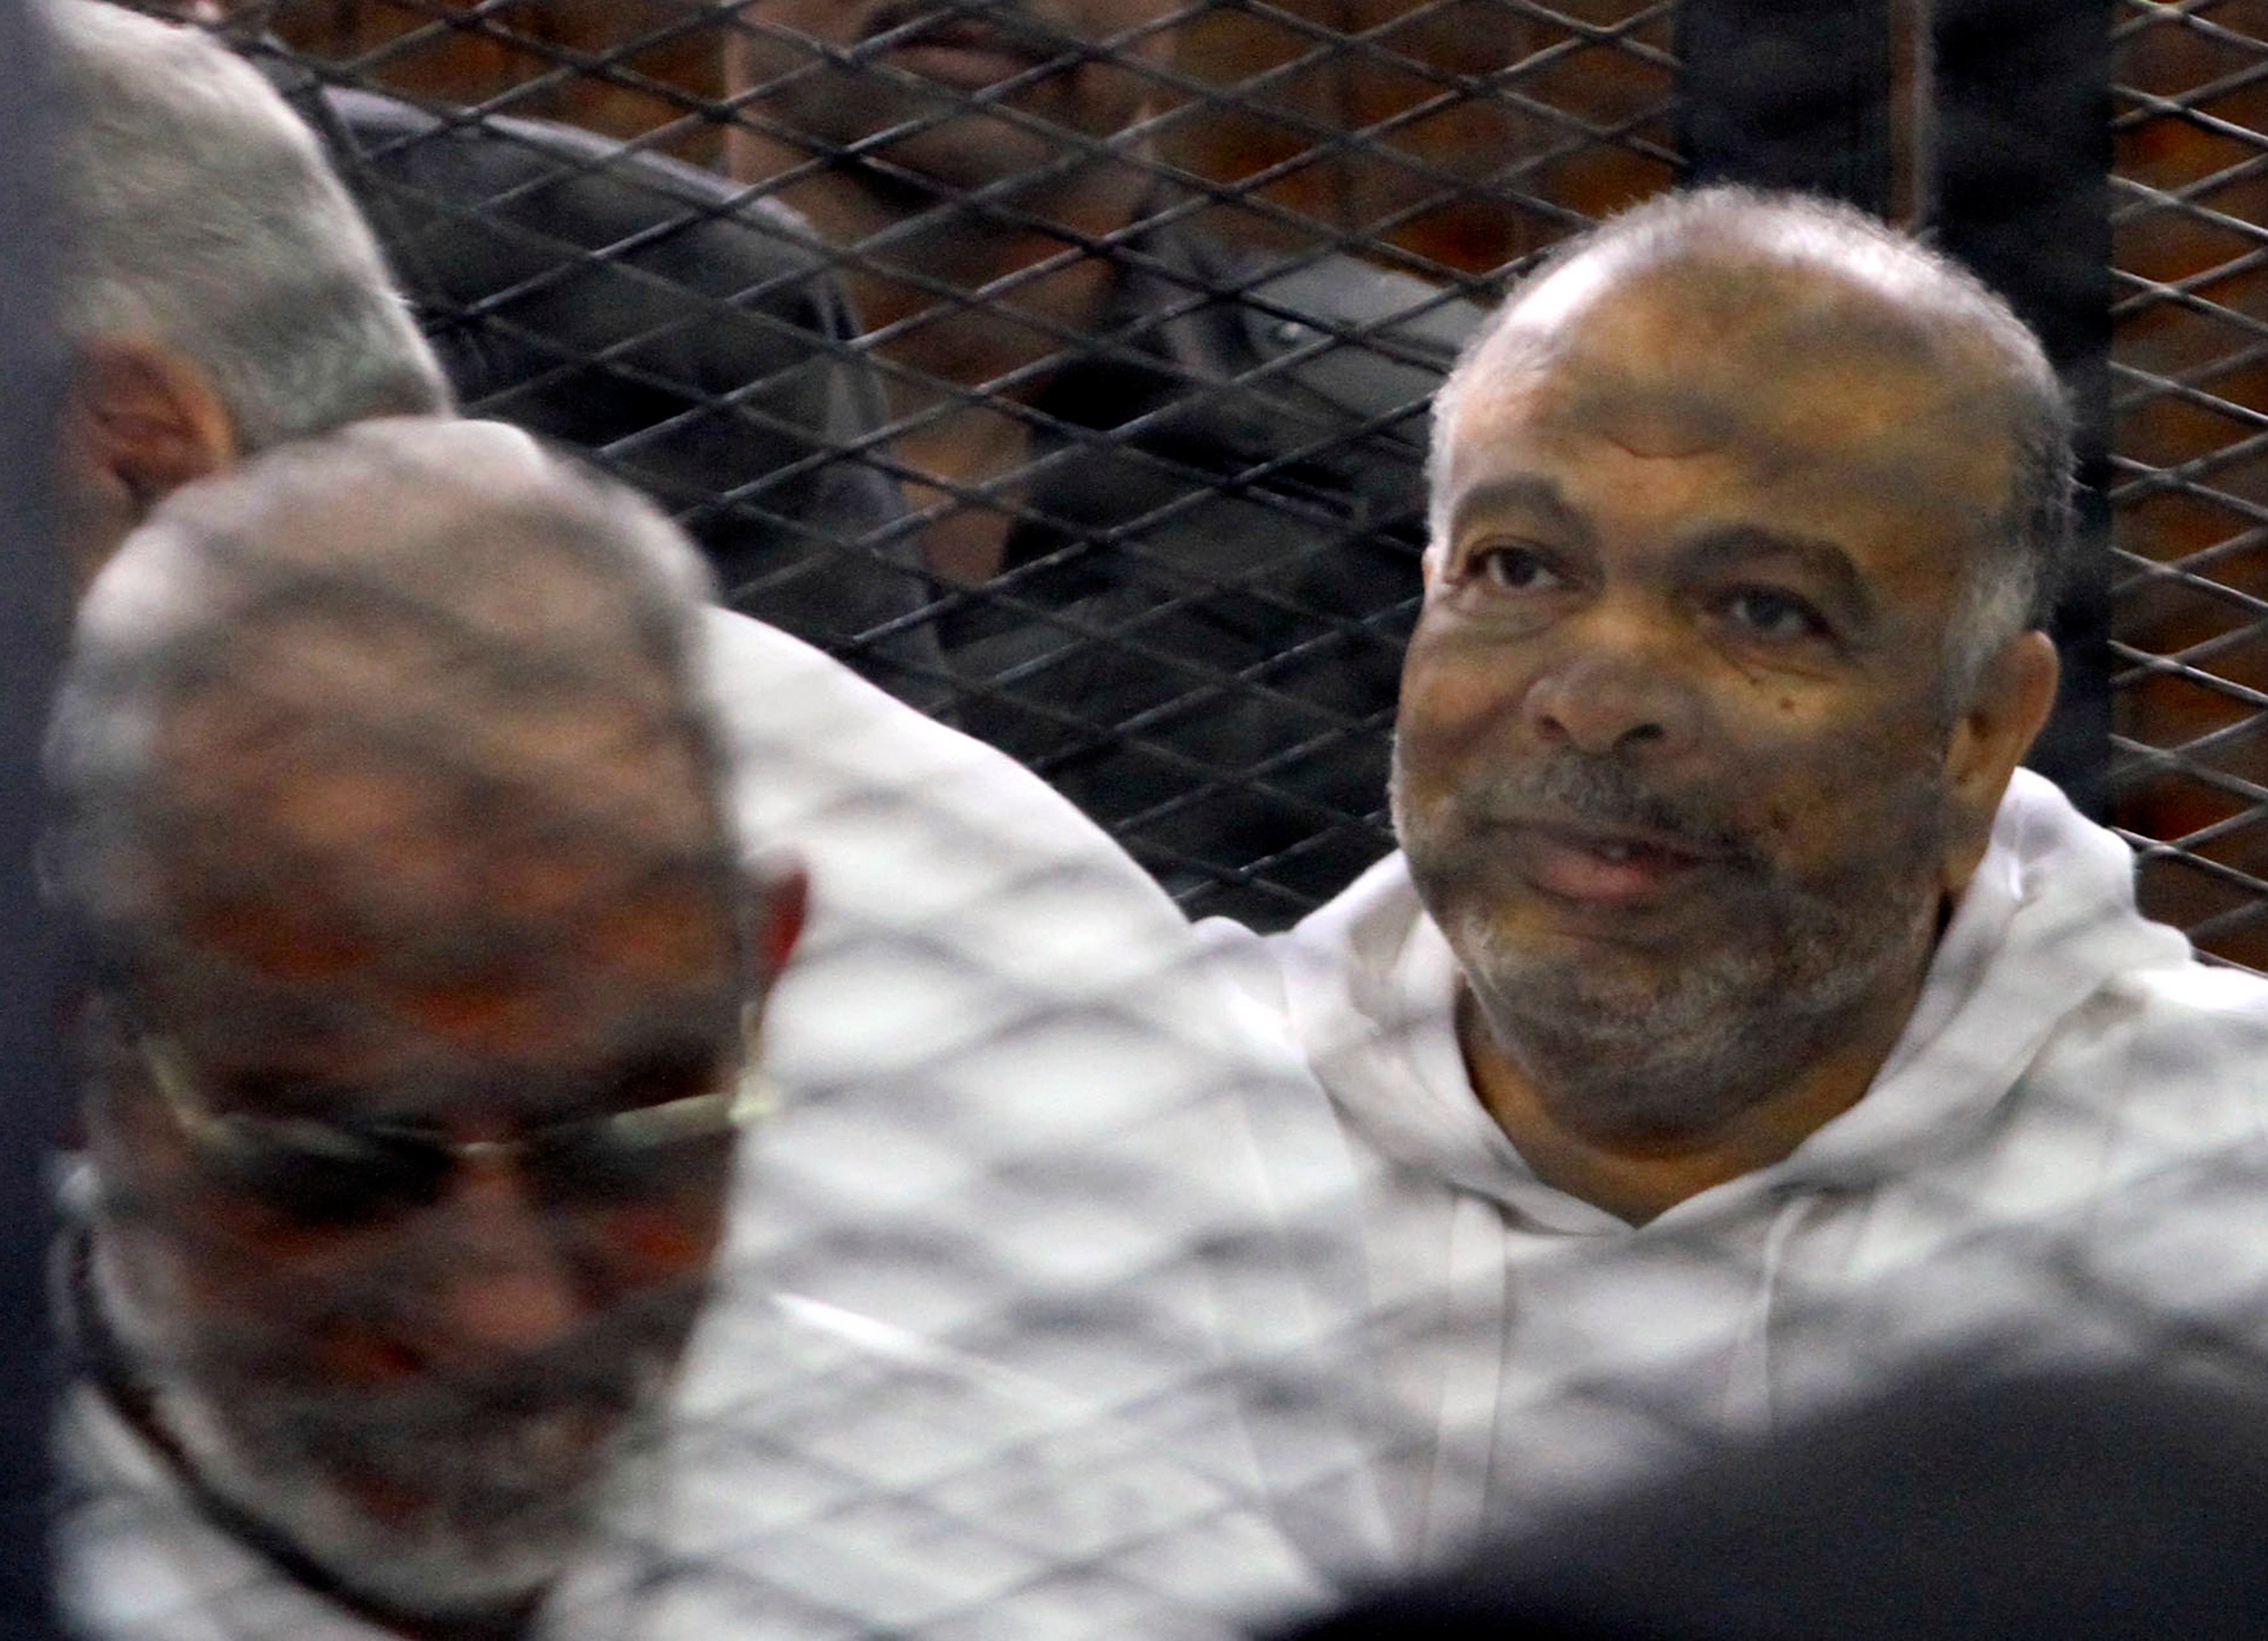 Saad El-Katatni (R), head of the Muslim Brotherhood's Freedom and Justice Party (FJP), sits in the defendant's cage beside the leader of the Muslim Brotherhood Mohammed Badie during their trial with other Brotherhood leaders in a courtroom in Cairo December 11, 2013.